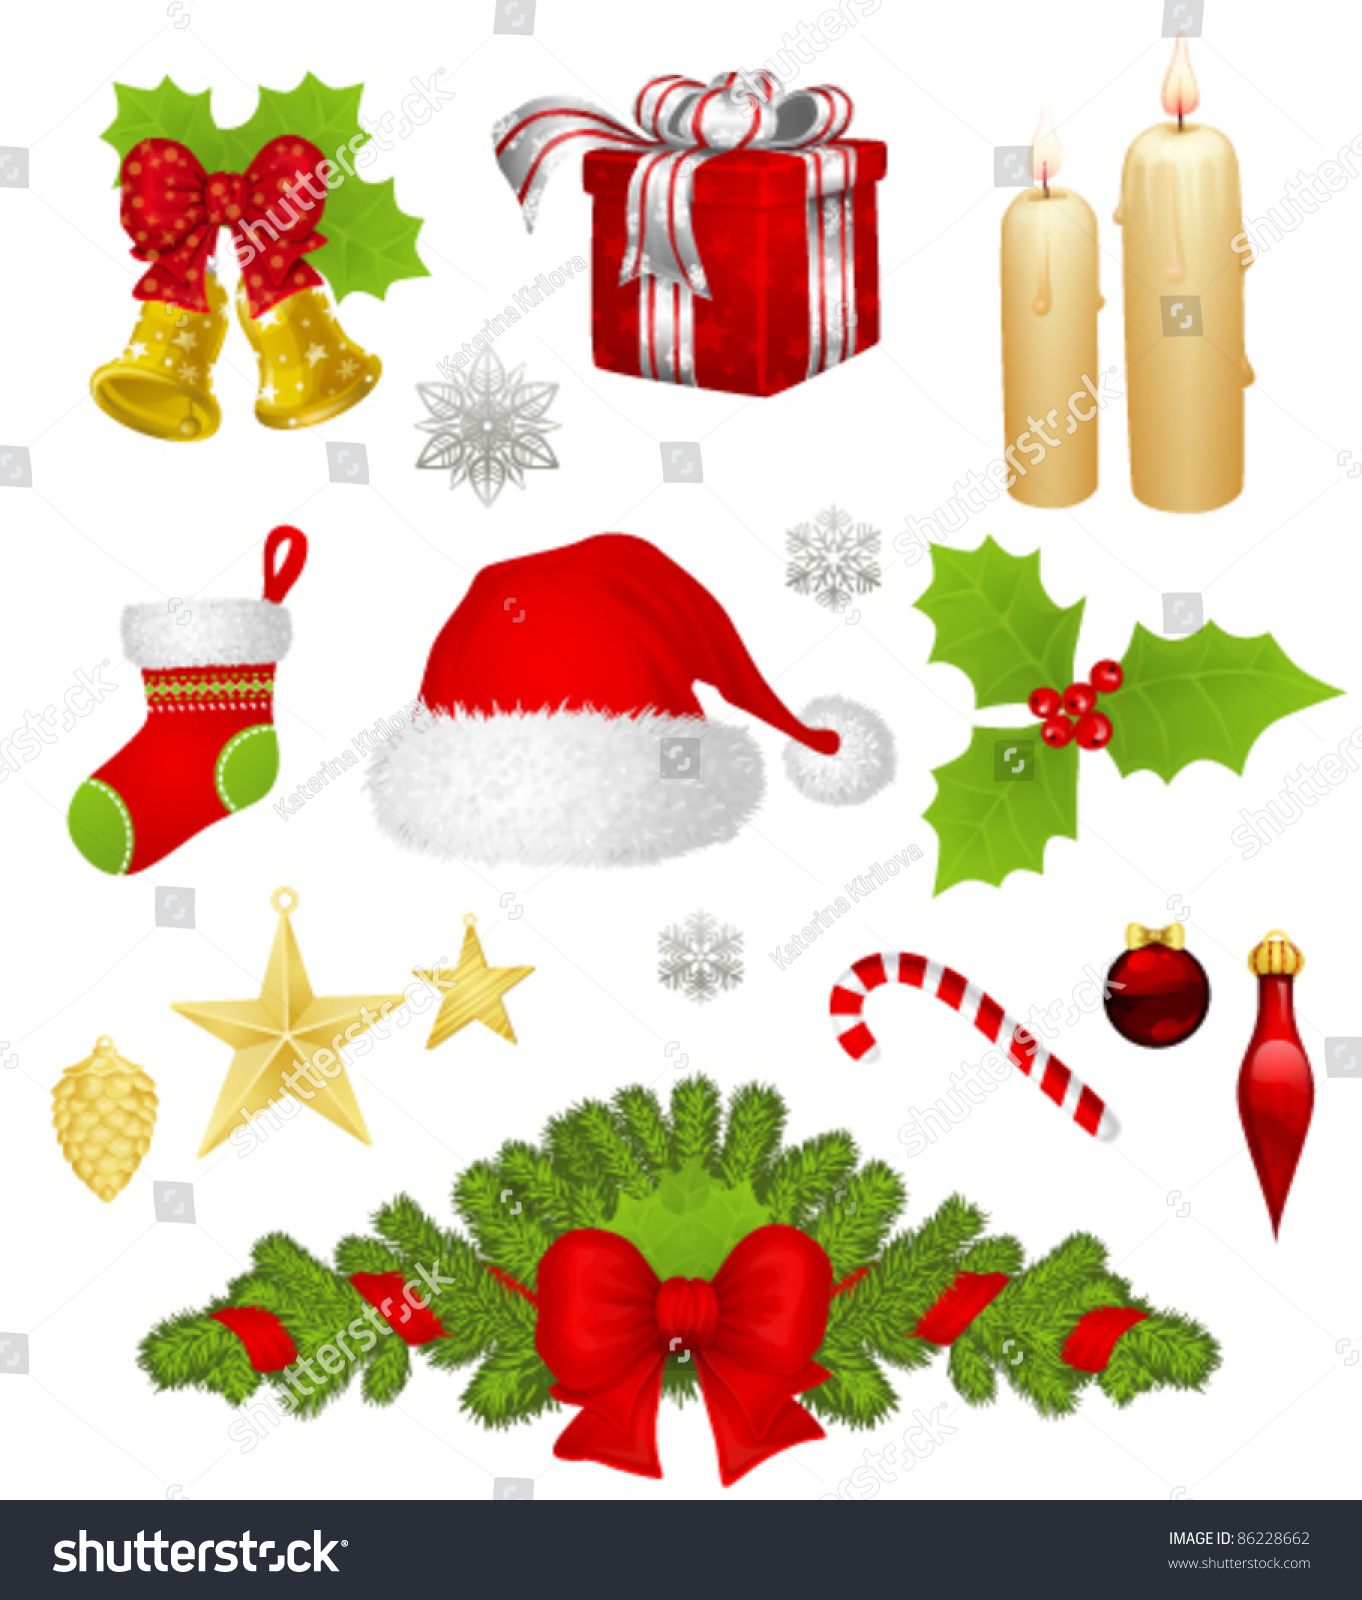 Online Image & Photo Editor  Shutterstock Editor. Wholesale Christmas Decorations Seattle. Homemade Christmas Decorations Household Items. Christmas Door Decorating Ideas For 2009. How To Make Christmas Reindeer Decorations. Photo Christmas Tree Decorations. Christmas Cake Decorations Wholesale Uk. Christmas Tree Decorations Amazon. Christmas Decorations Using Ornaments